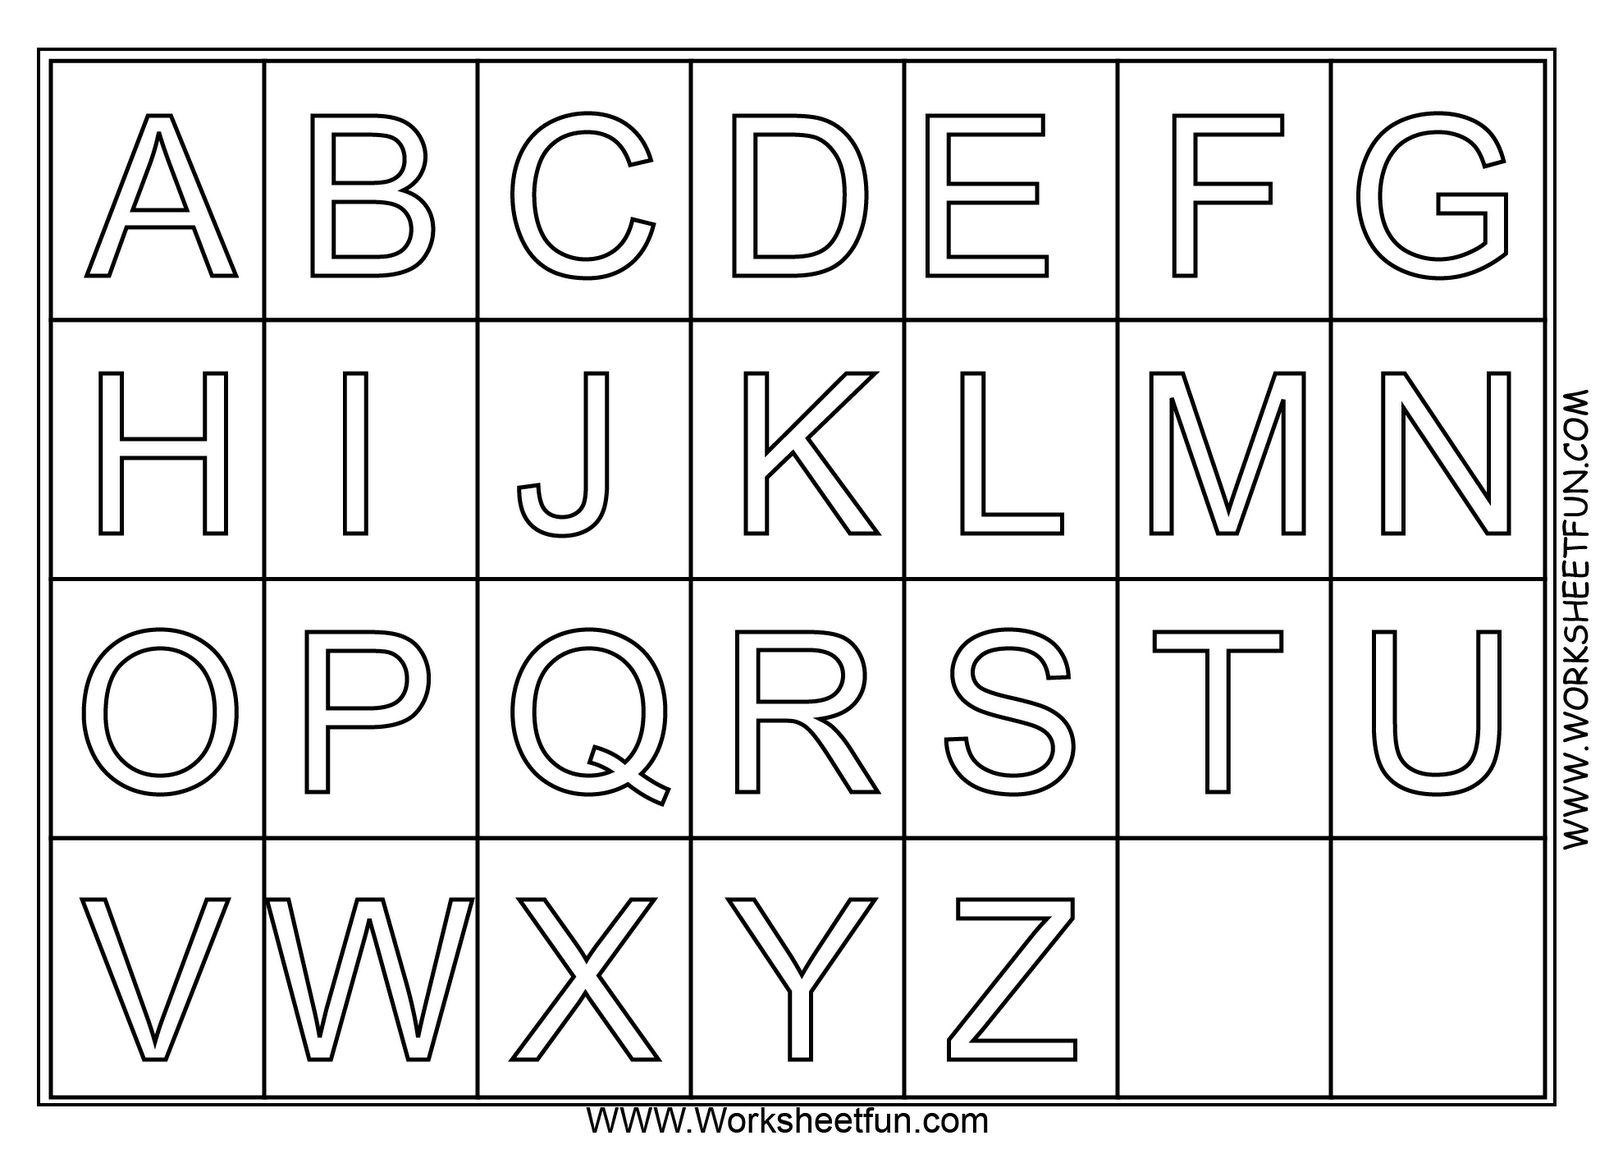 A Z Alphabet Coloring Pages Download And Print For Free pertaining to A-Z Alphabet Worksheets Kindergarten